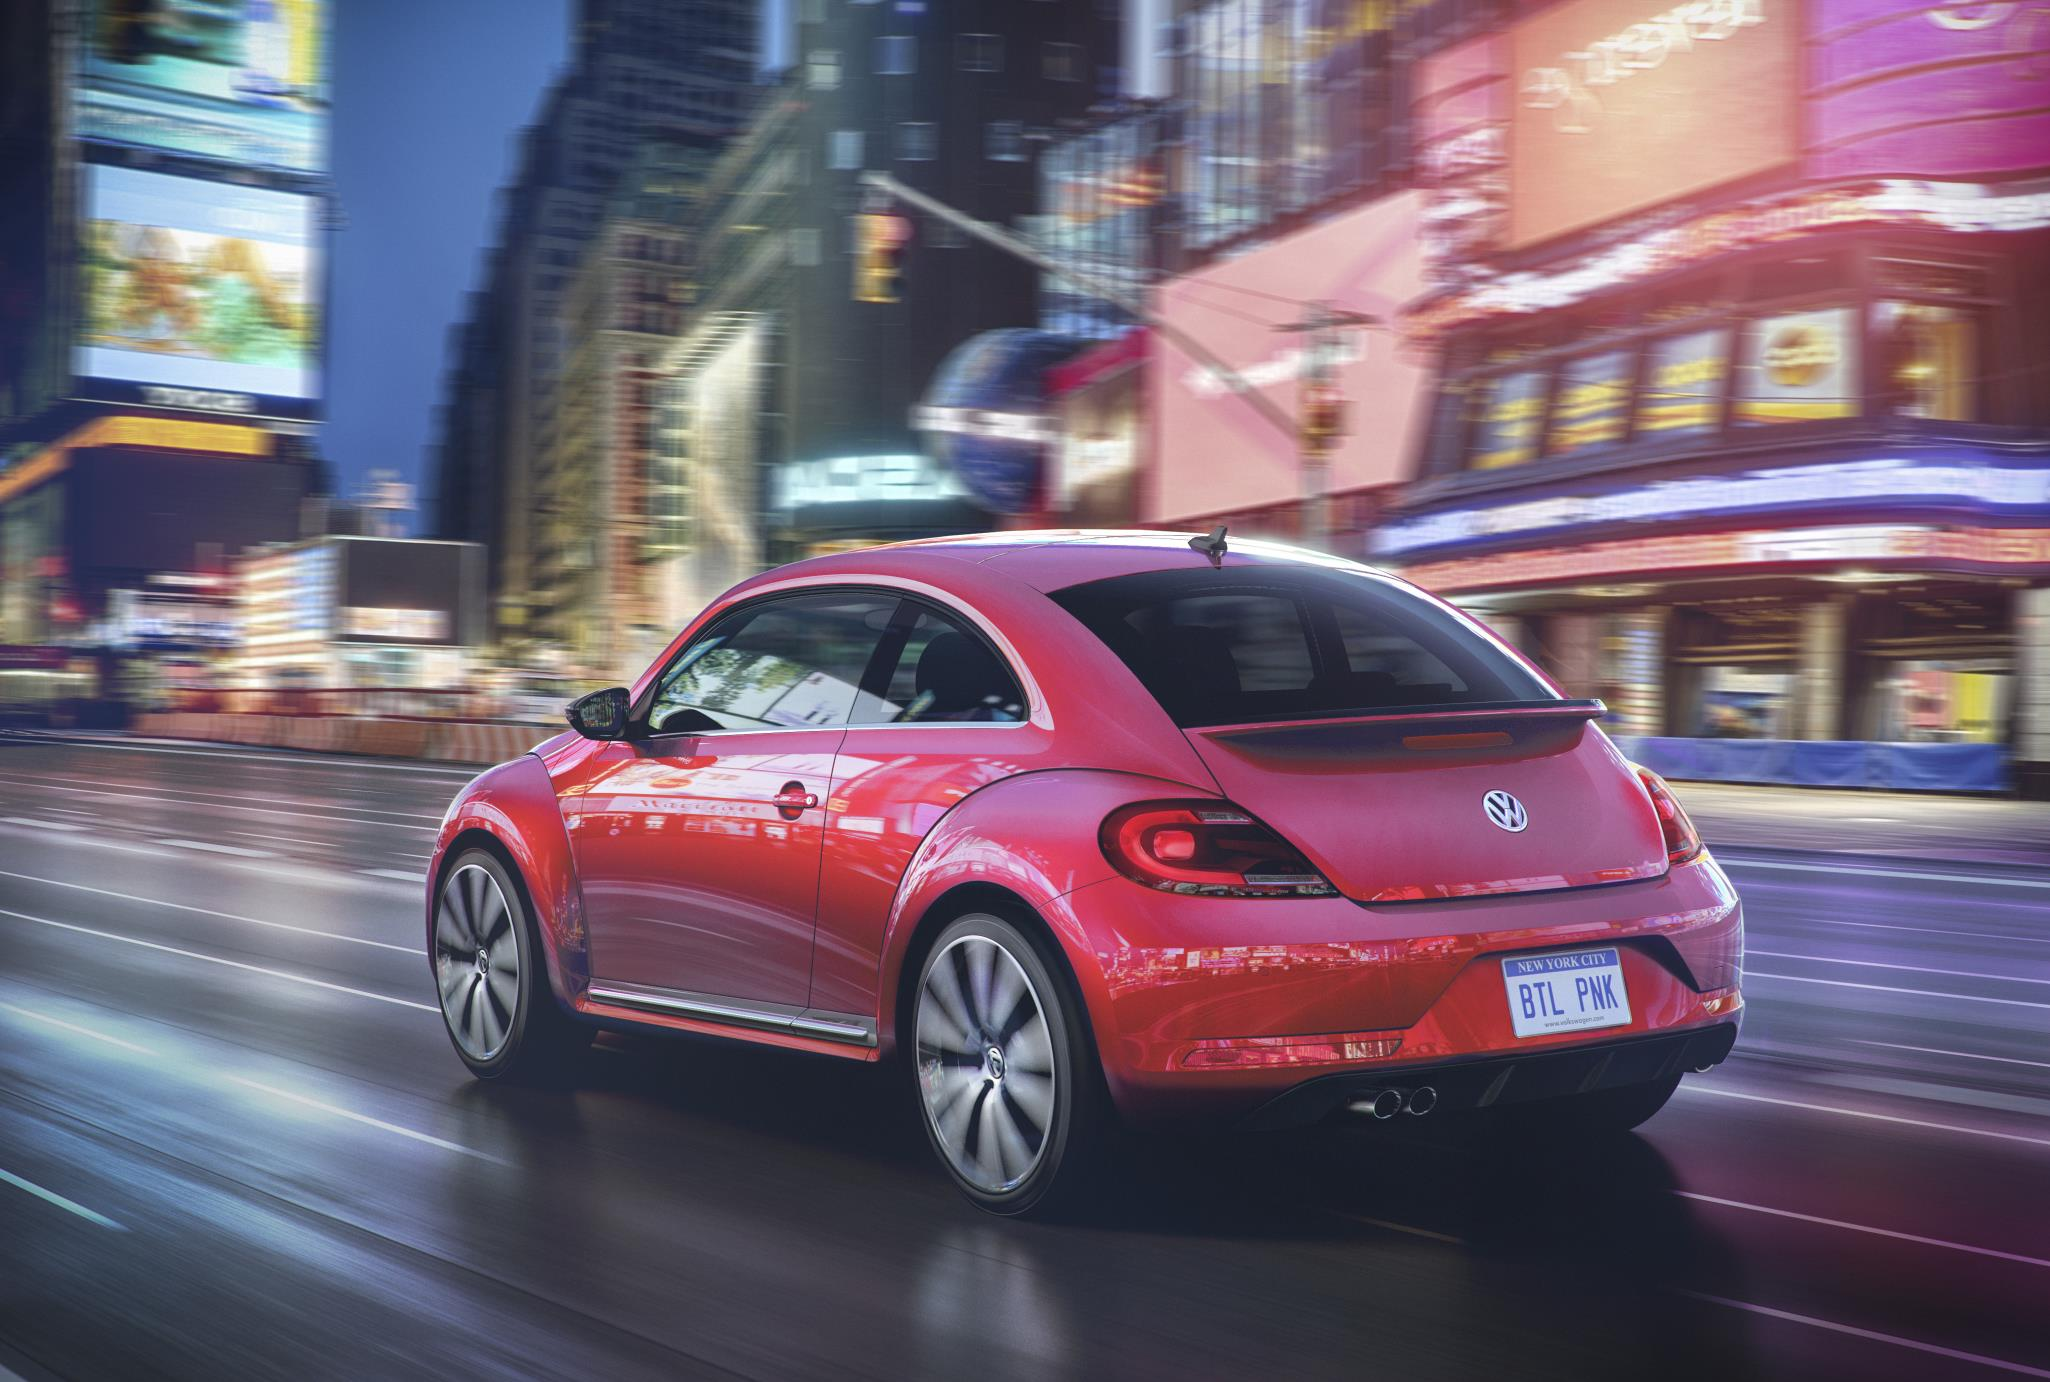 2017 Volkswagen Beetle Spawns #PinkBeetle Special Edition - autoevolution